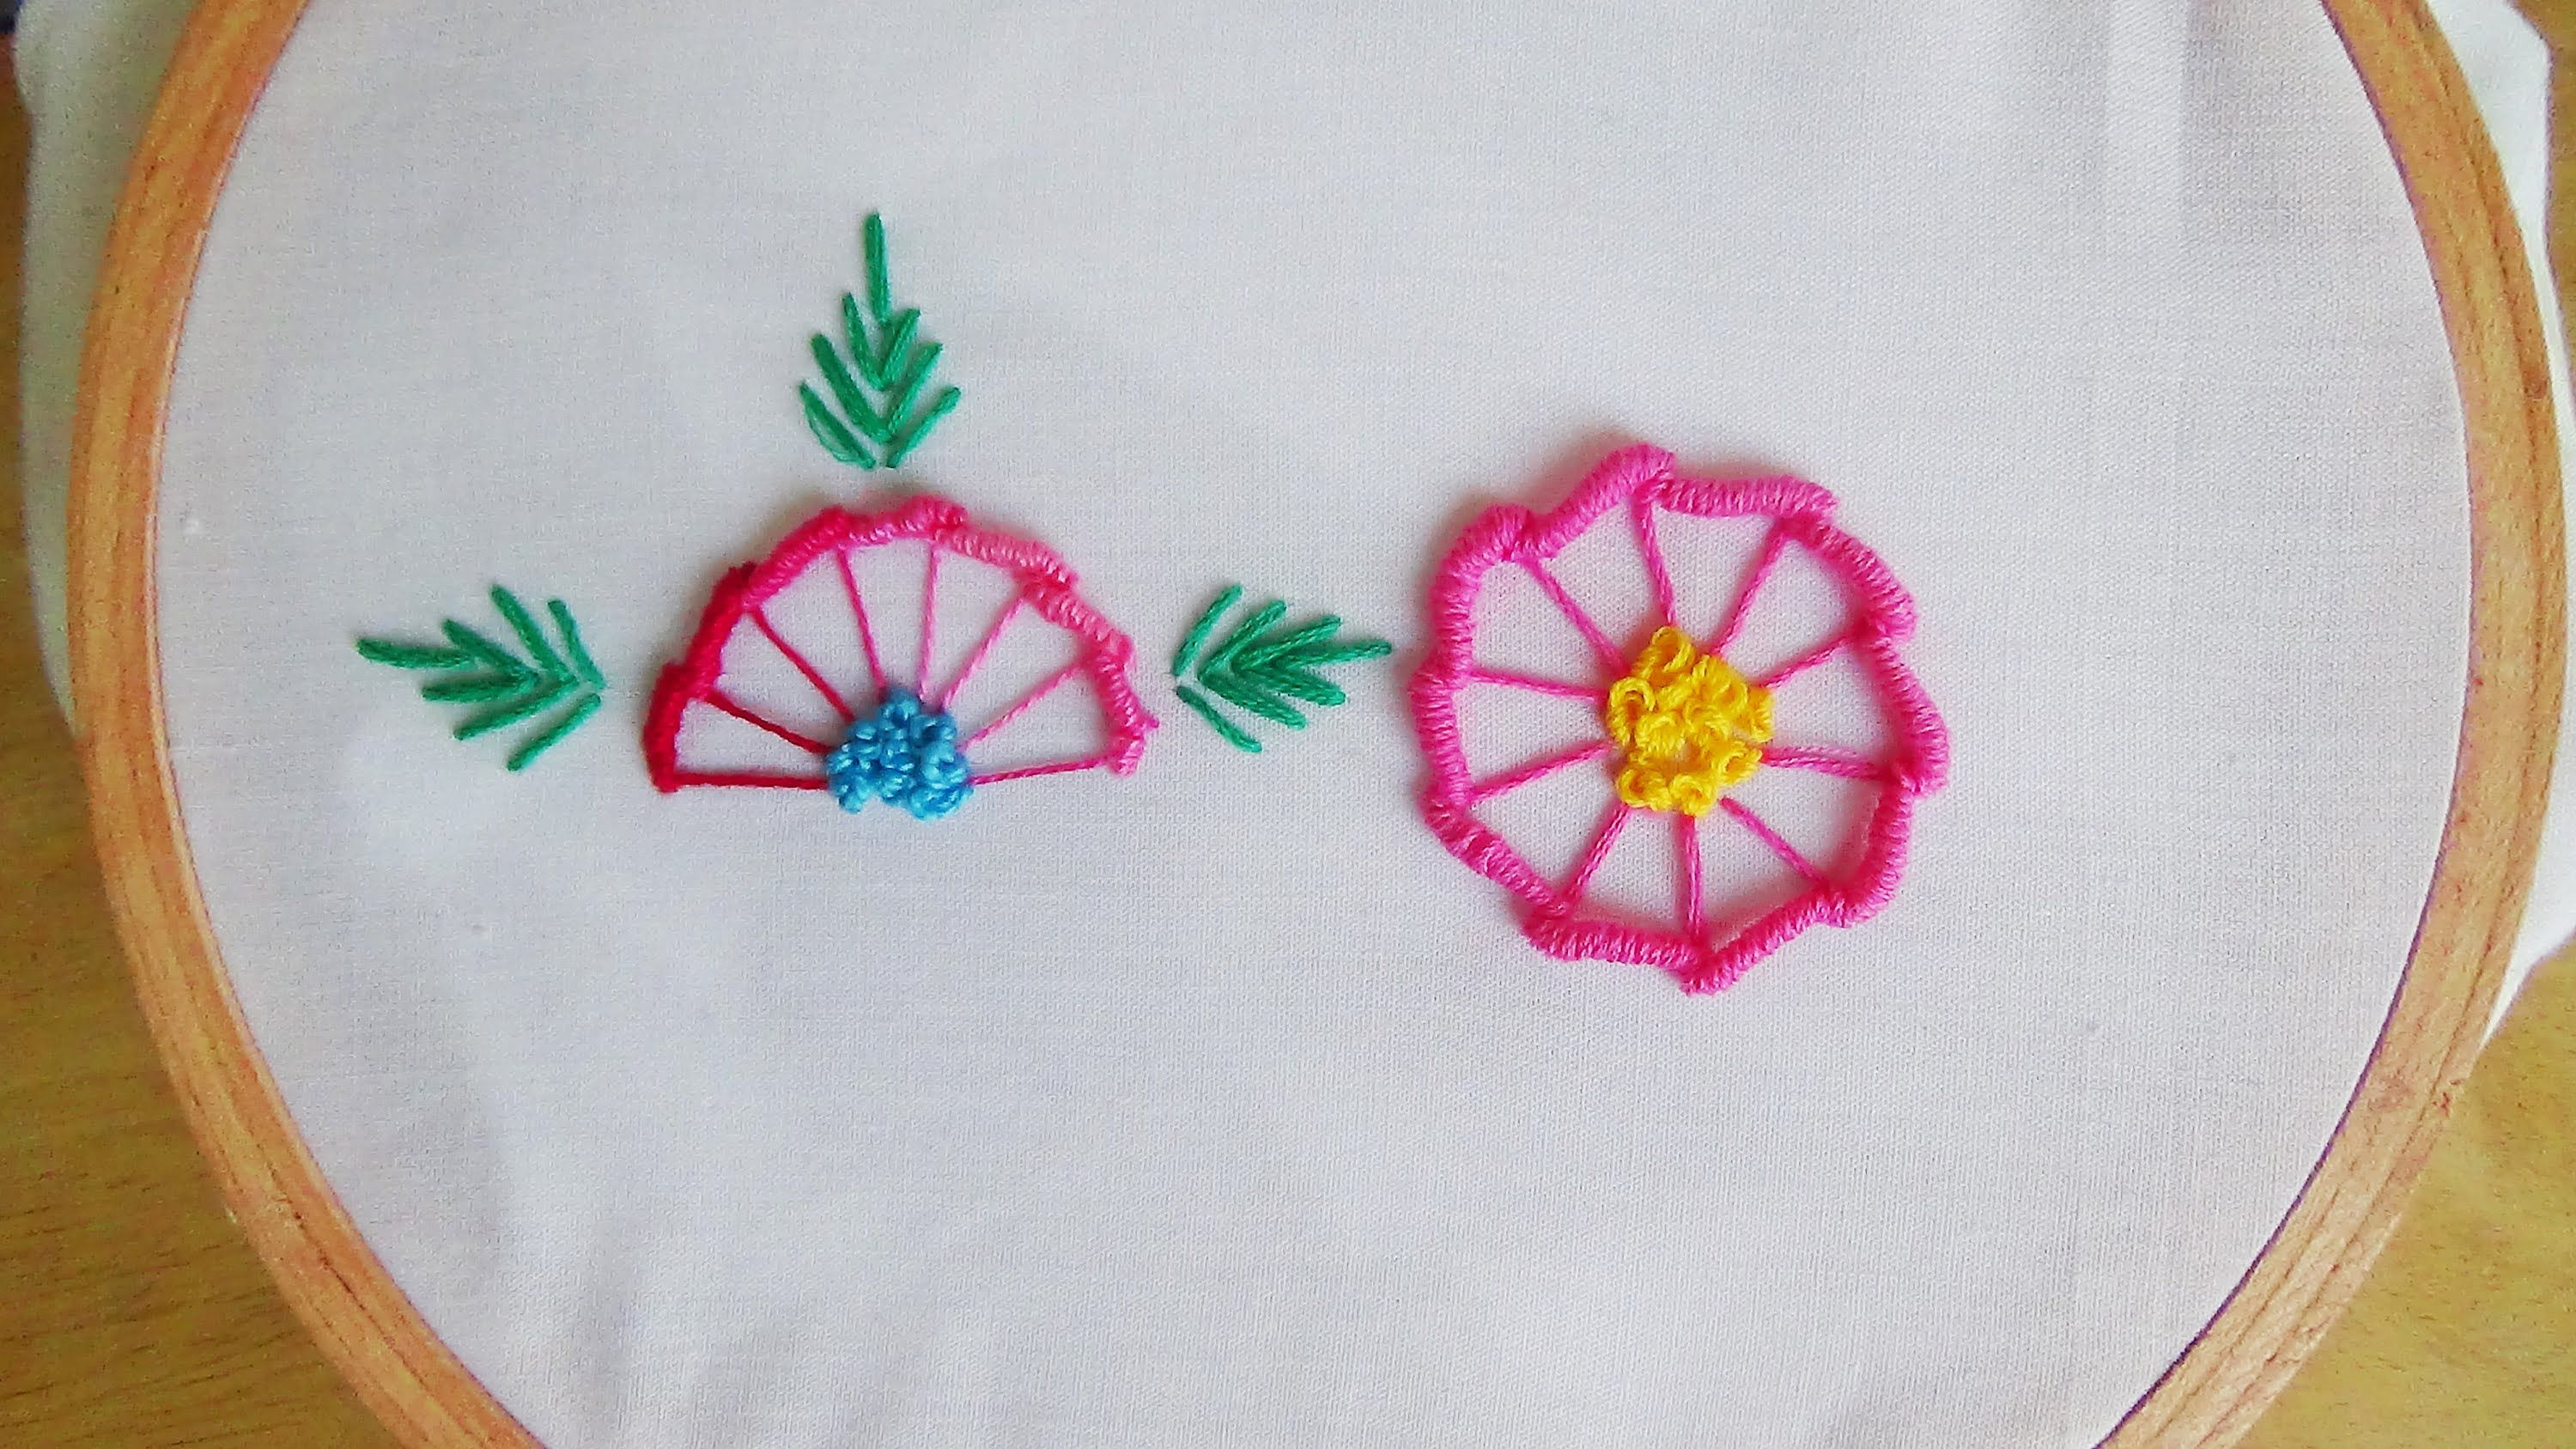 Hand Embroidery: Bullion Knot and Blanket Stitch (Flowers ...